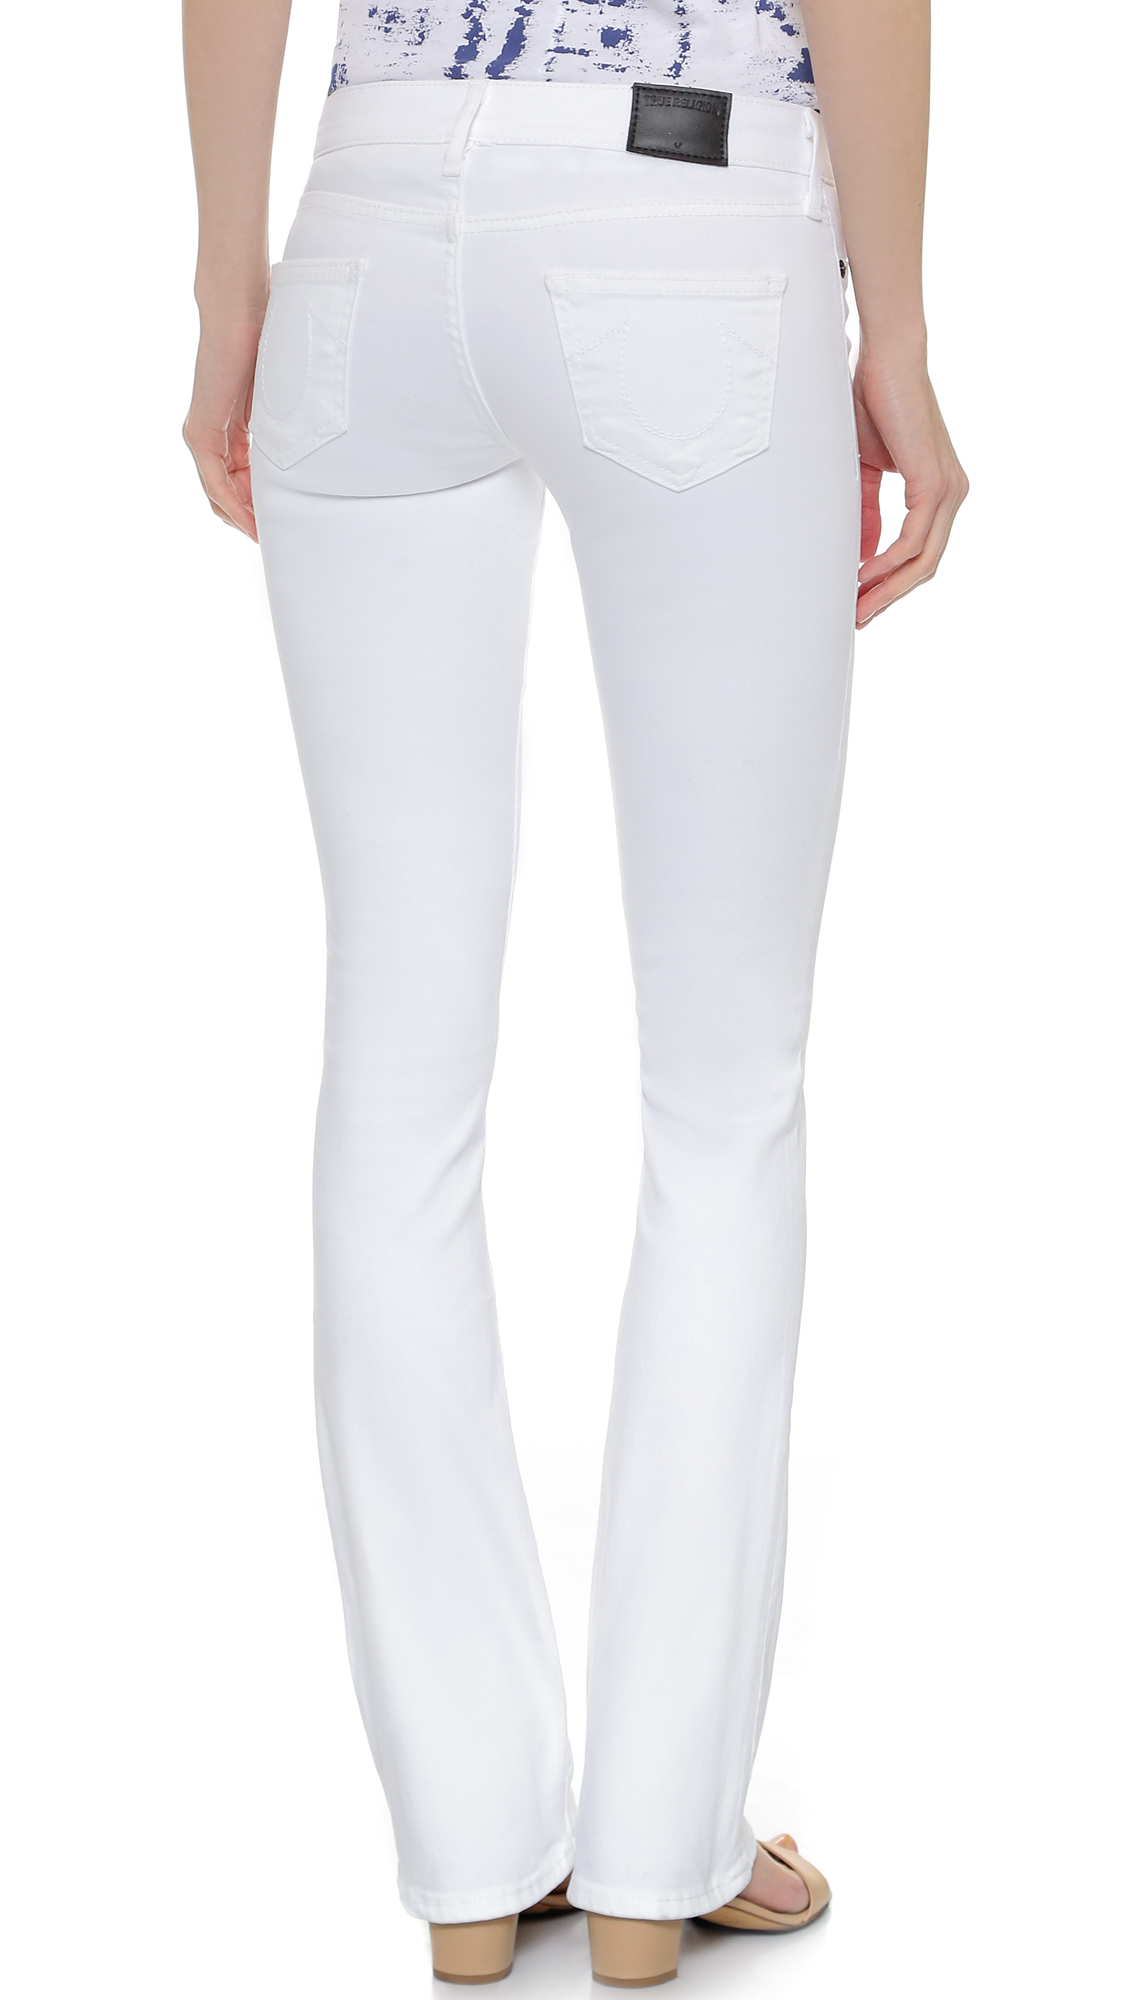 True religion Becca Mid Rise Boot Cut Jeans - Optic White in White ...